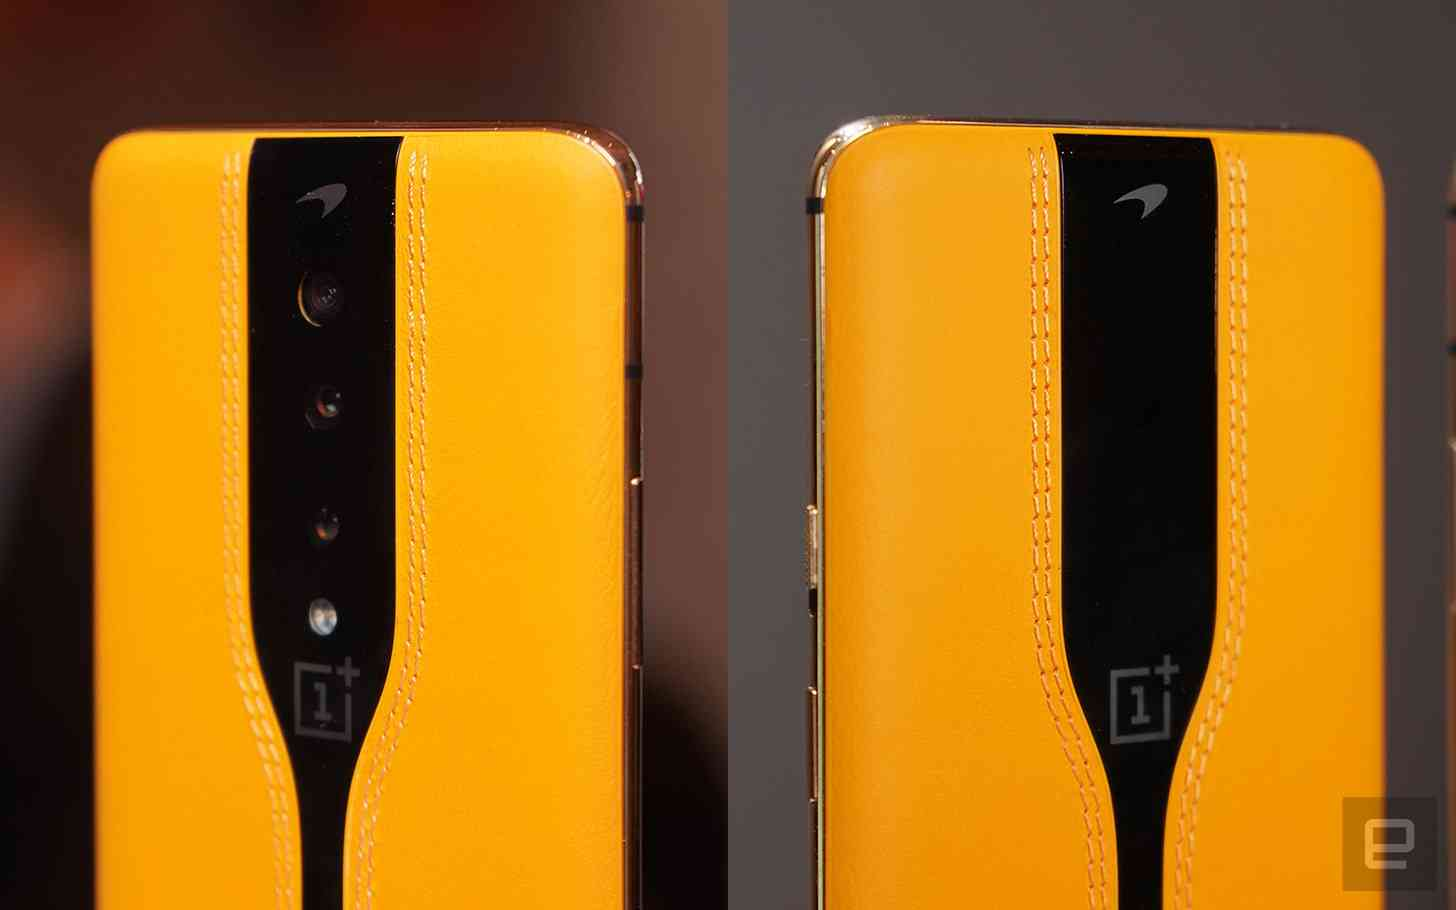 OnePlus Concept One disappearing cameras